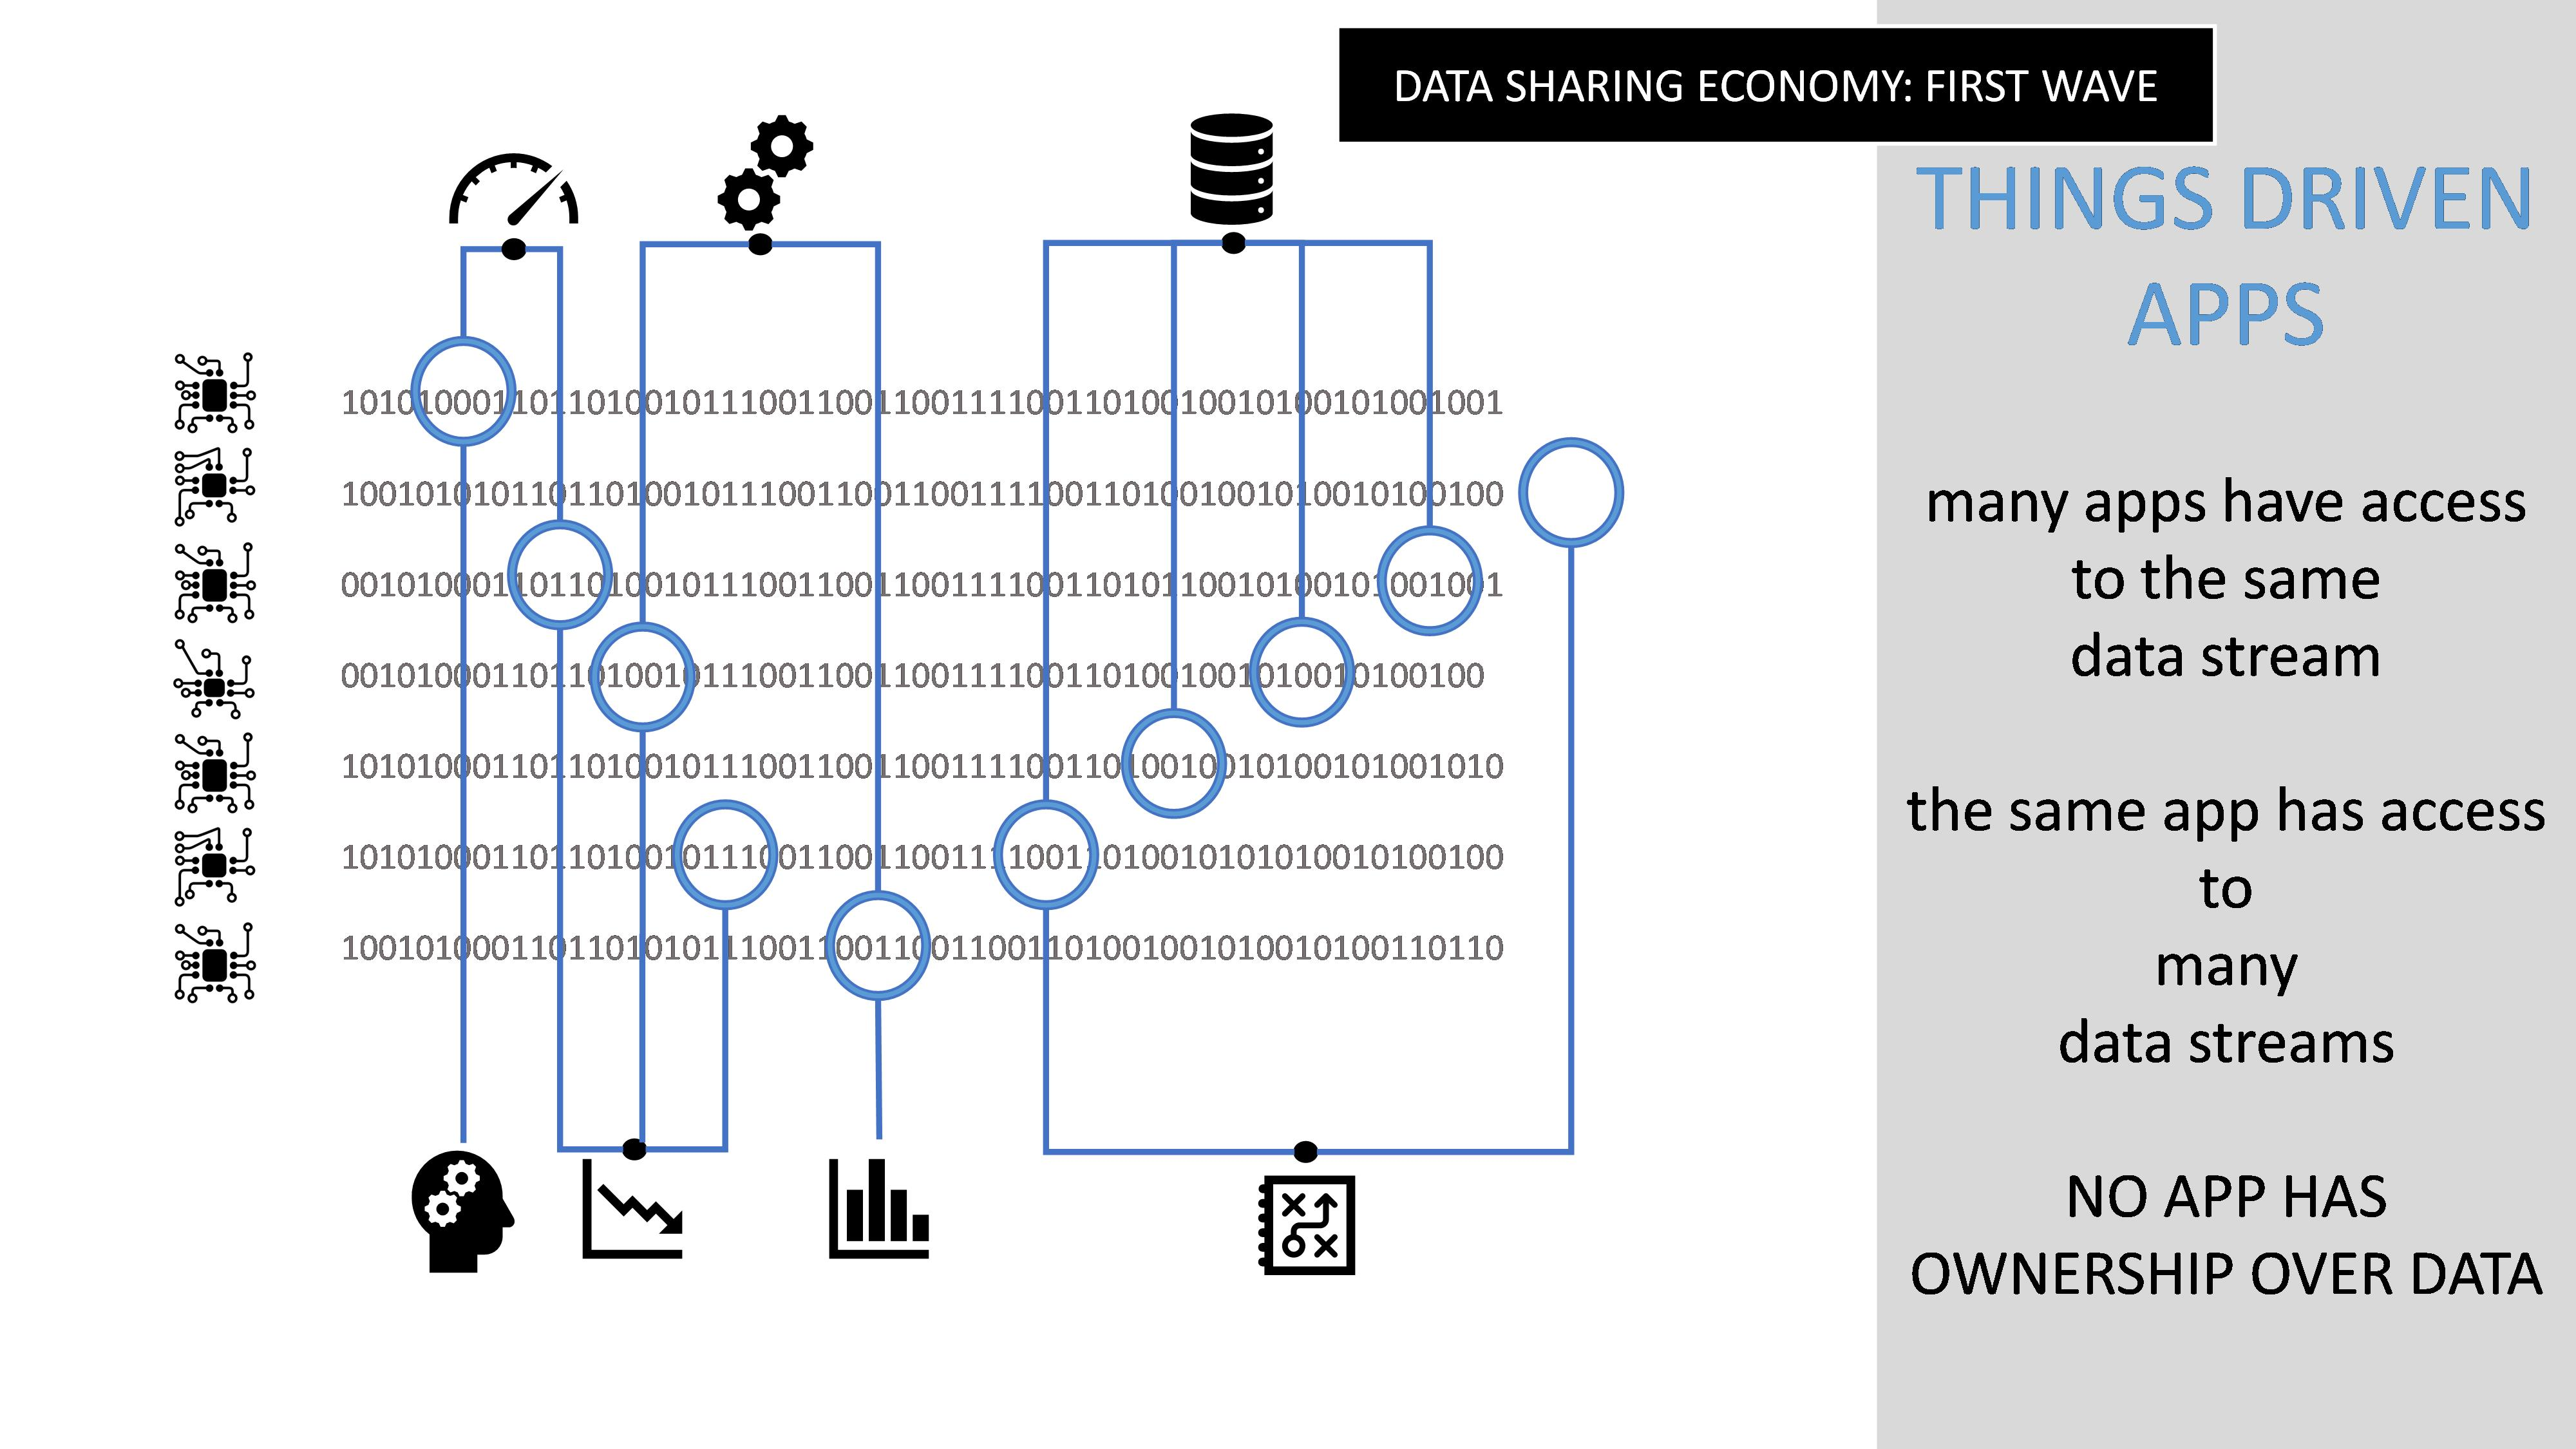 Data Sharing Economy first wave